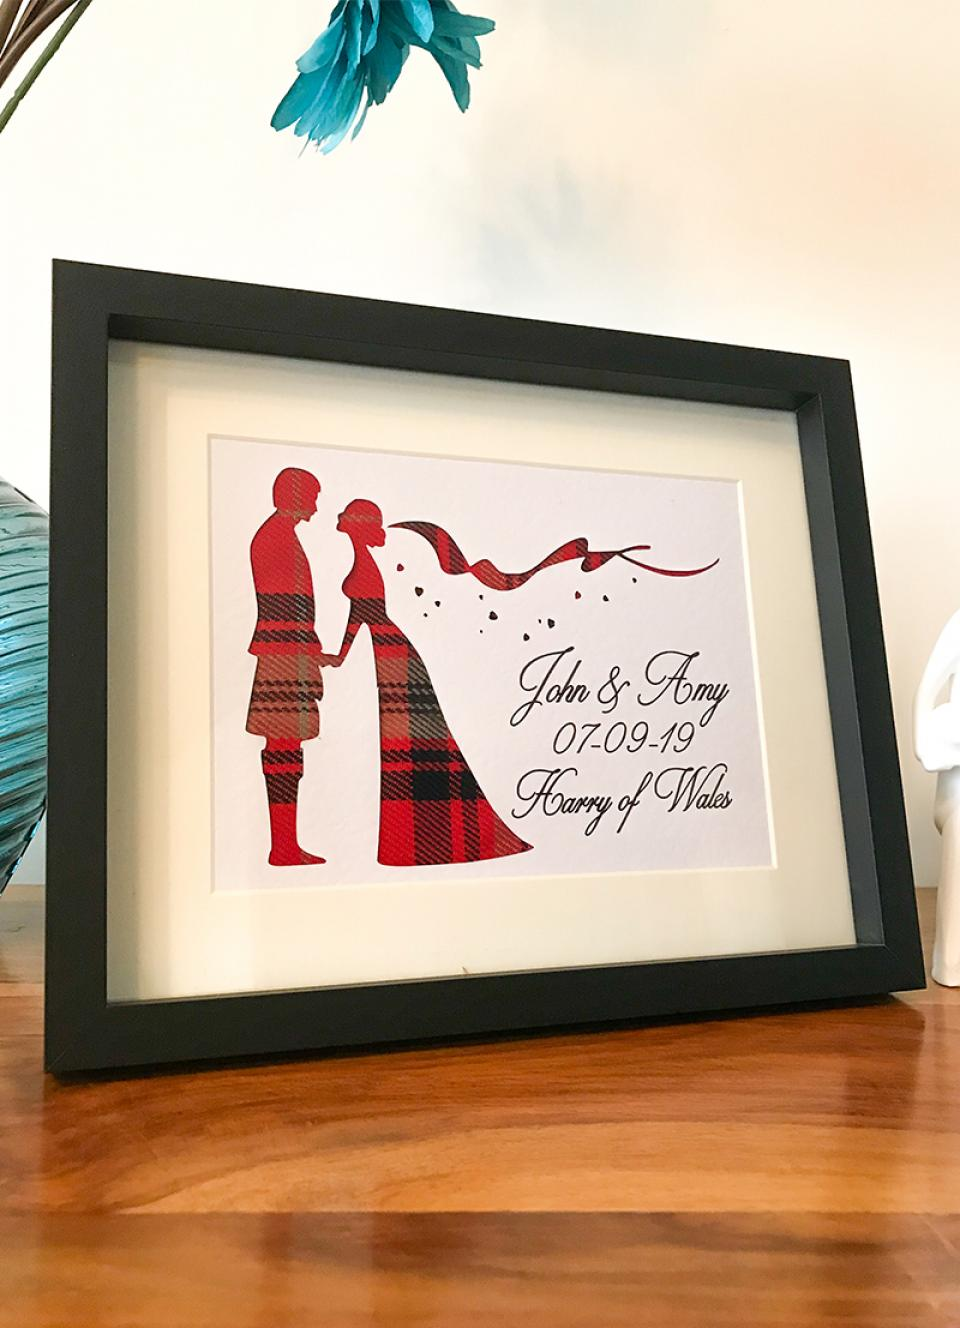 Welsh Tartan Wedding Frame